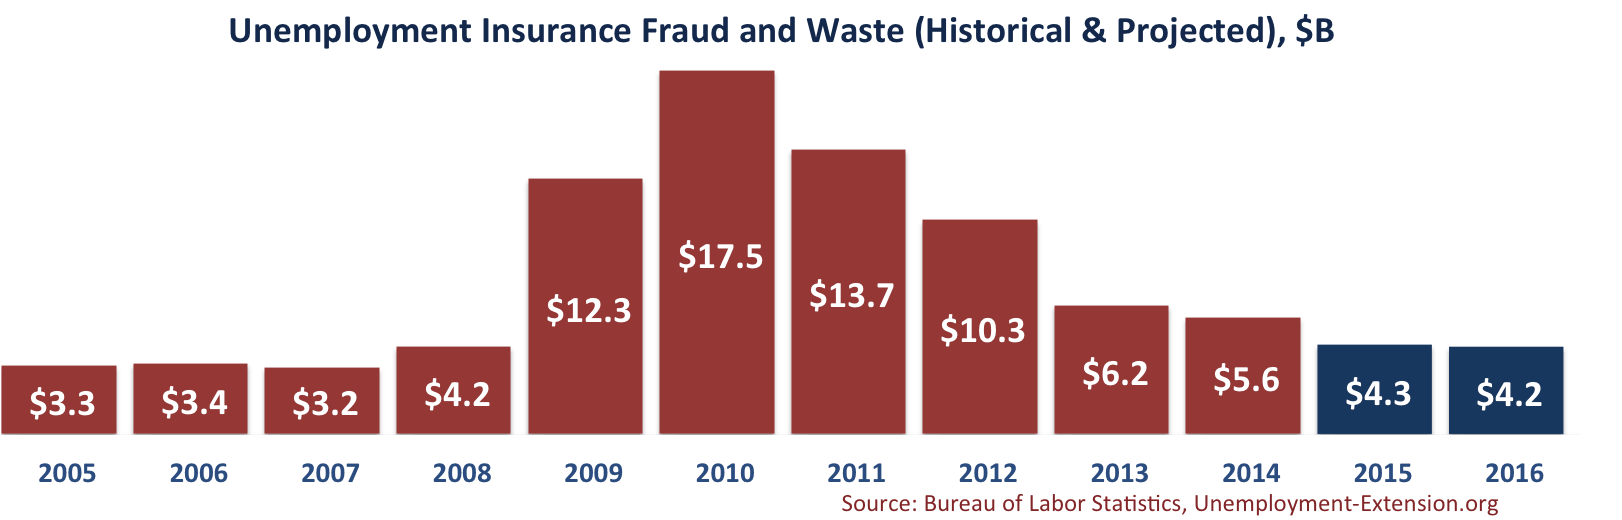 Unemployment Insurance Fraud and Waste (Historical & Projected) in April 2015